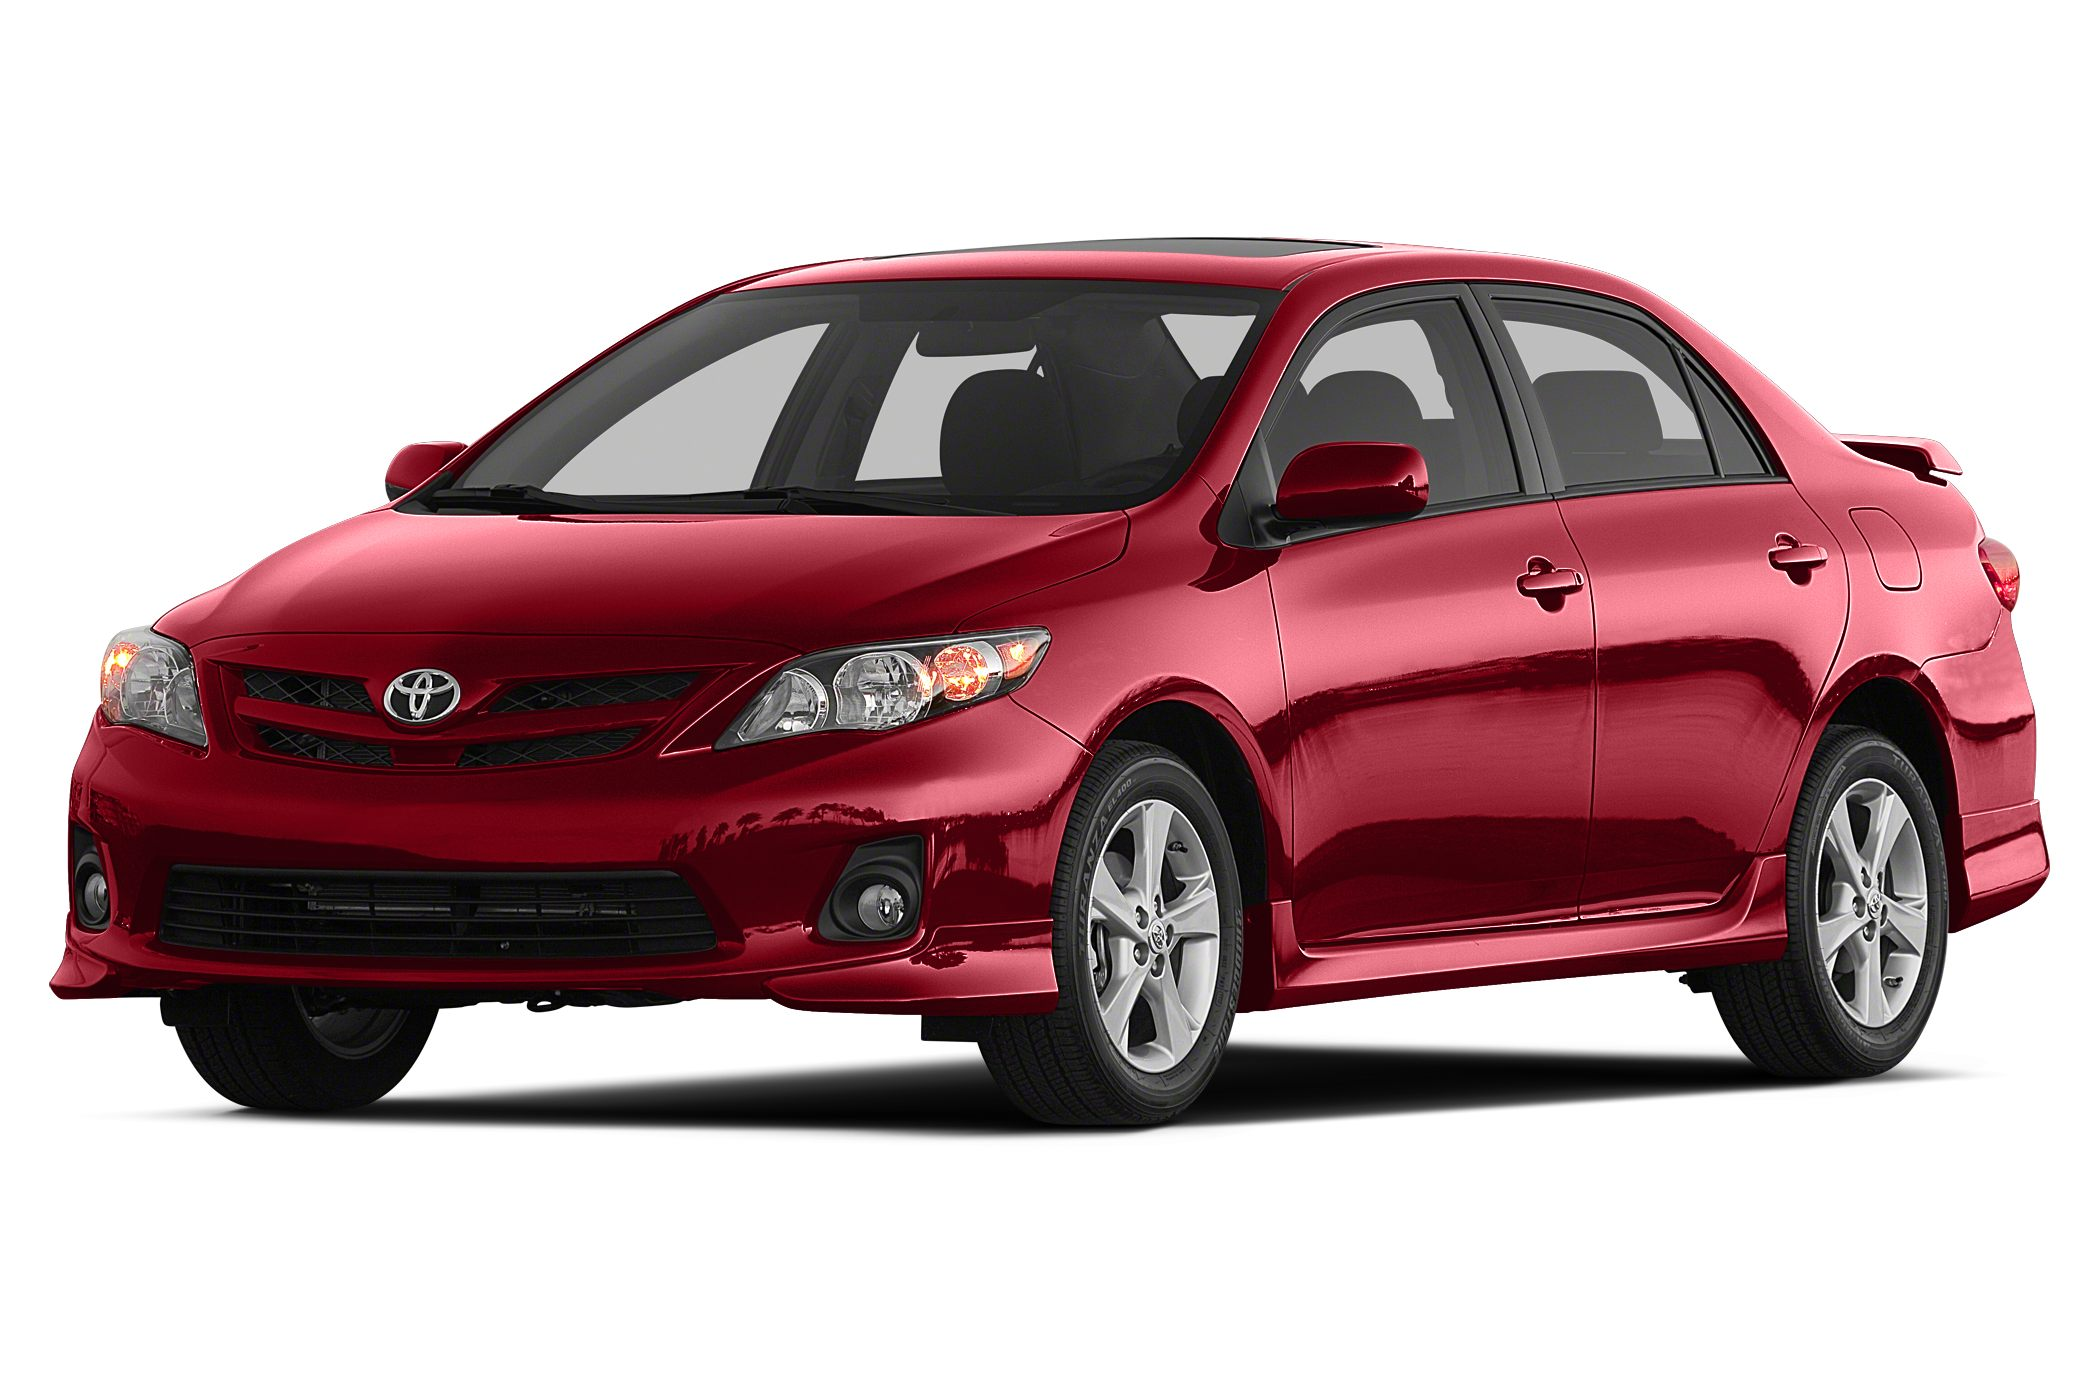 2012 Toyota Corolla S Sedan for sale in Sioux Falls for $15,995 with 20,622 miles